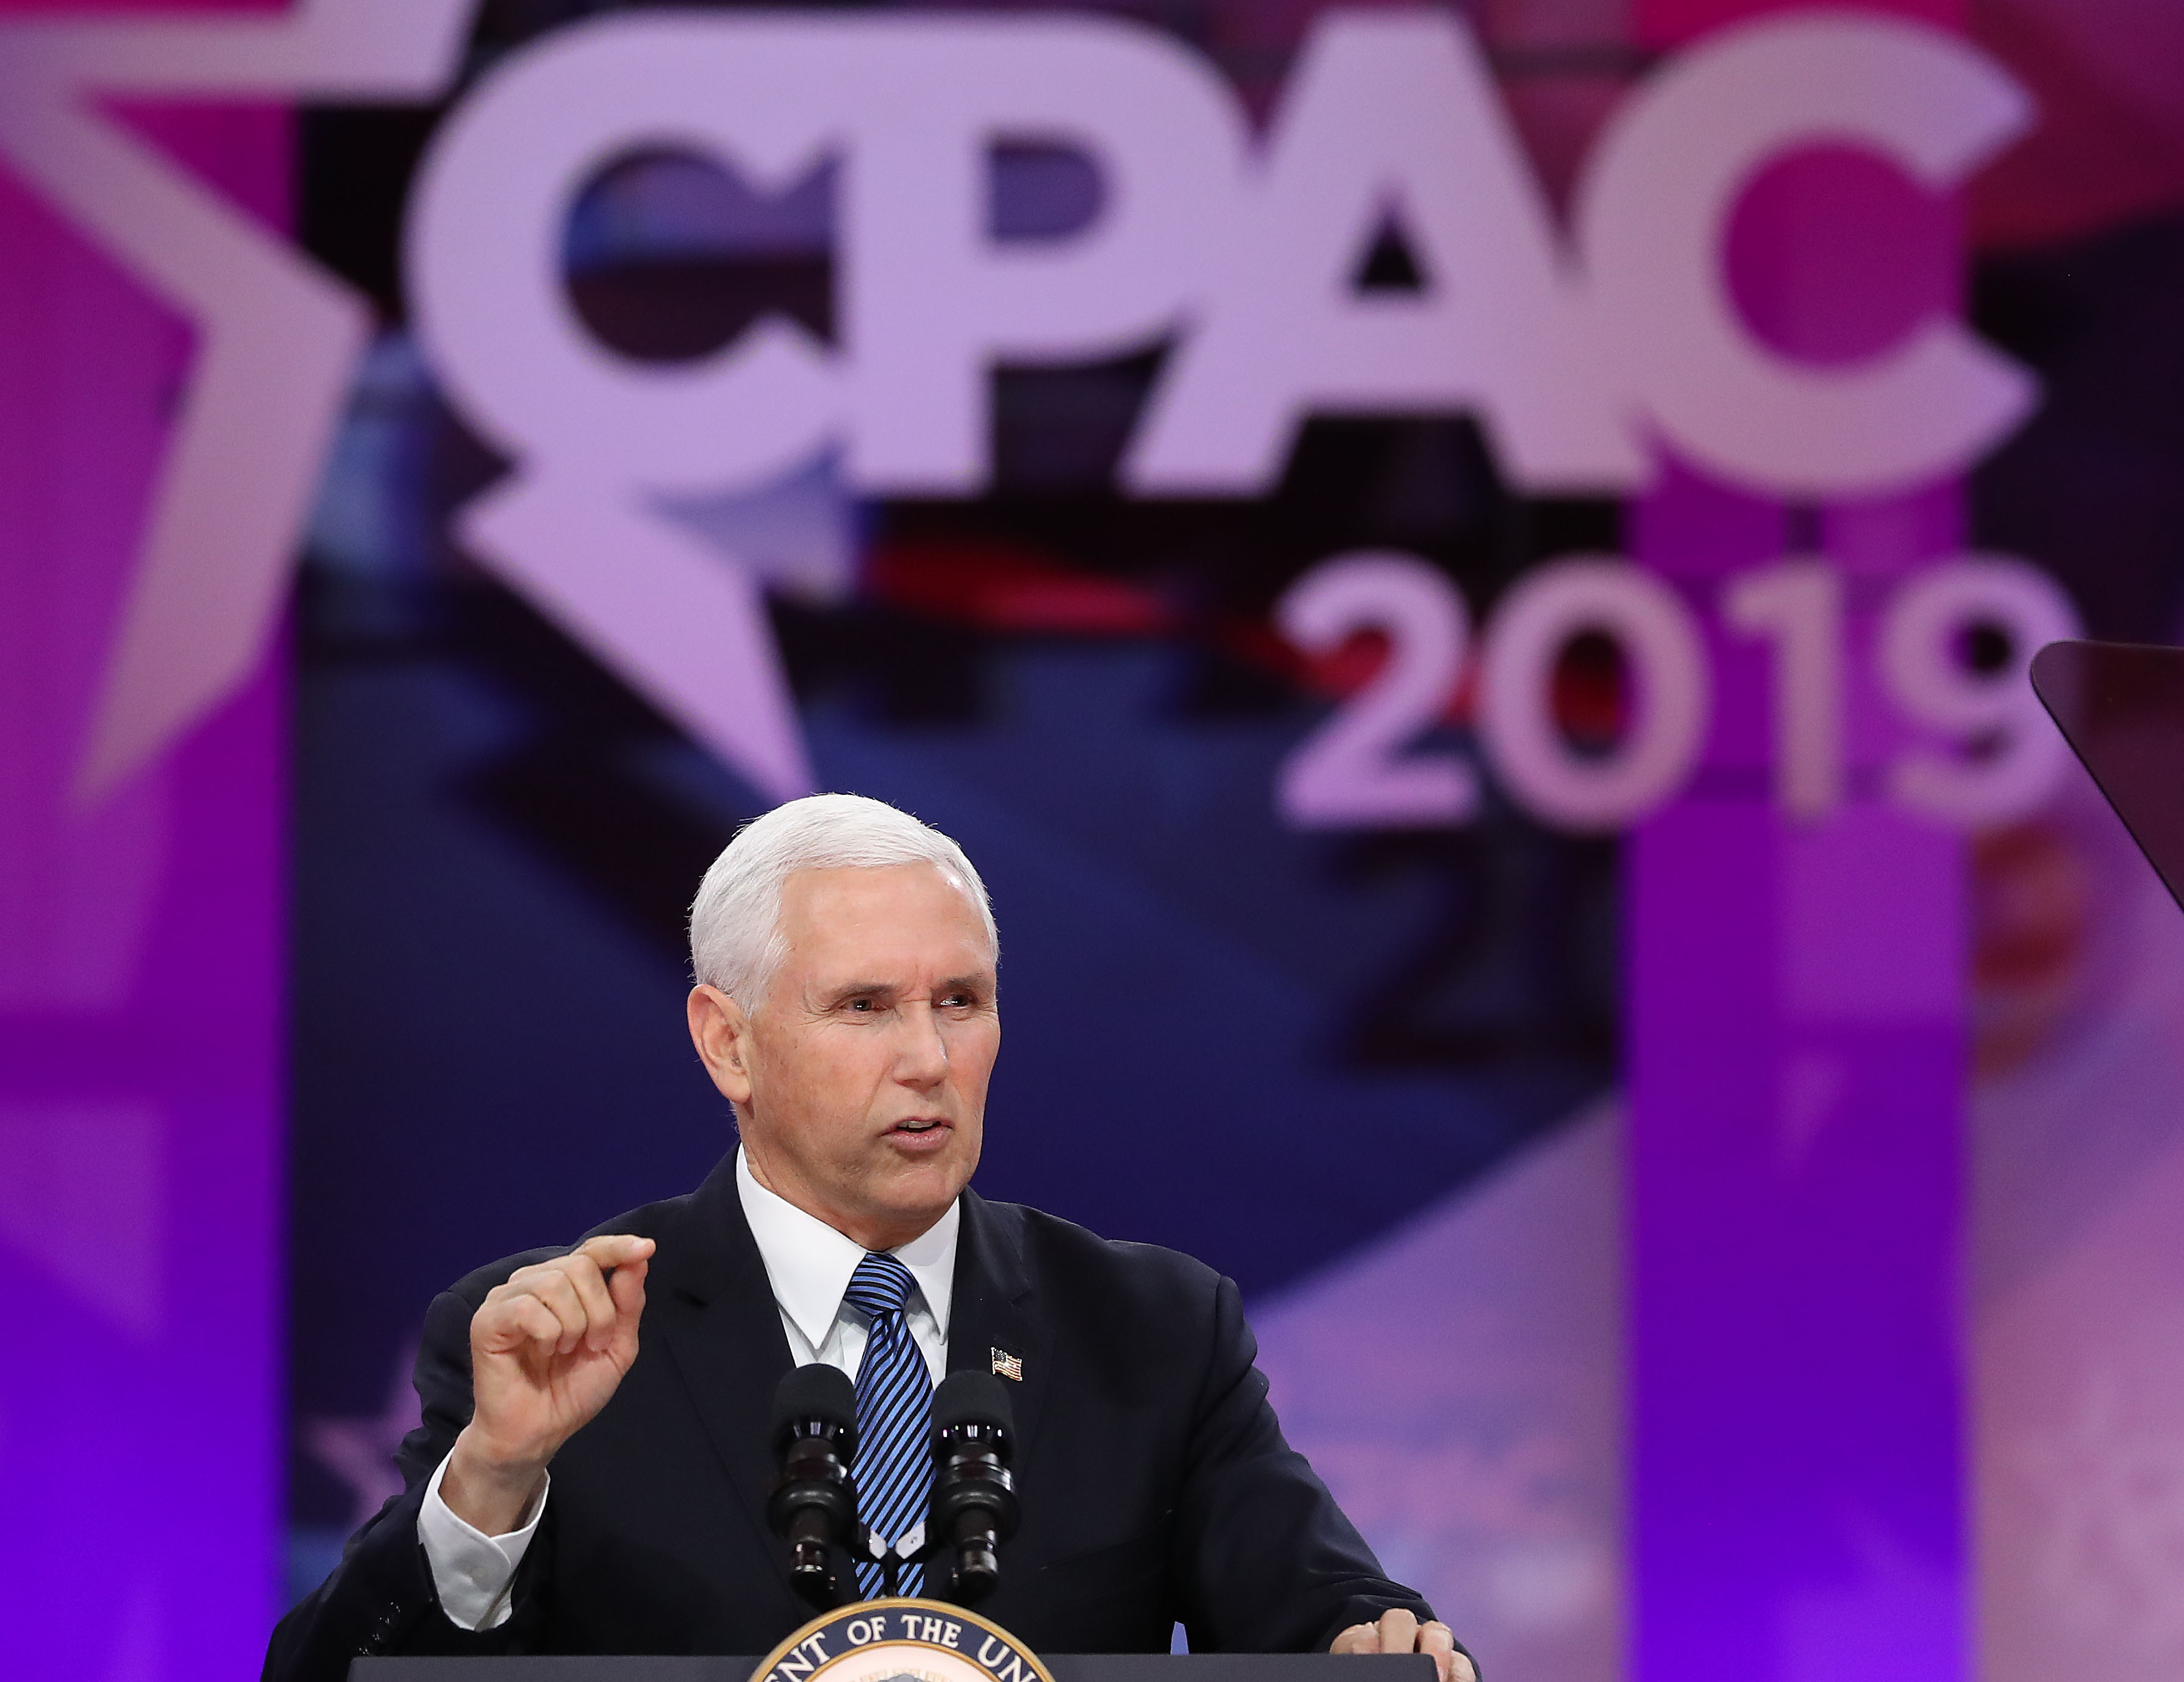 Vice President Mike Pence speaks during CPAC 2019 in National Harbor, Maryland.